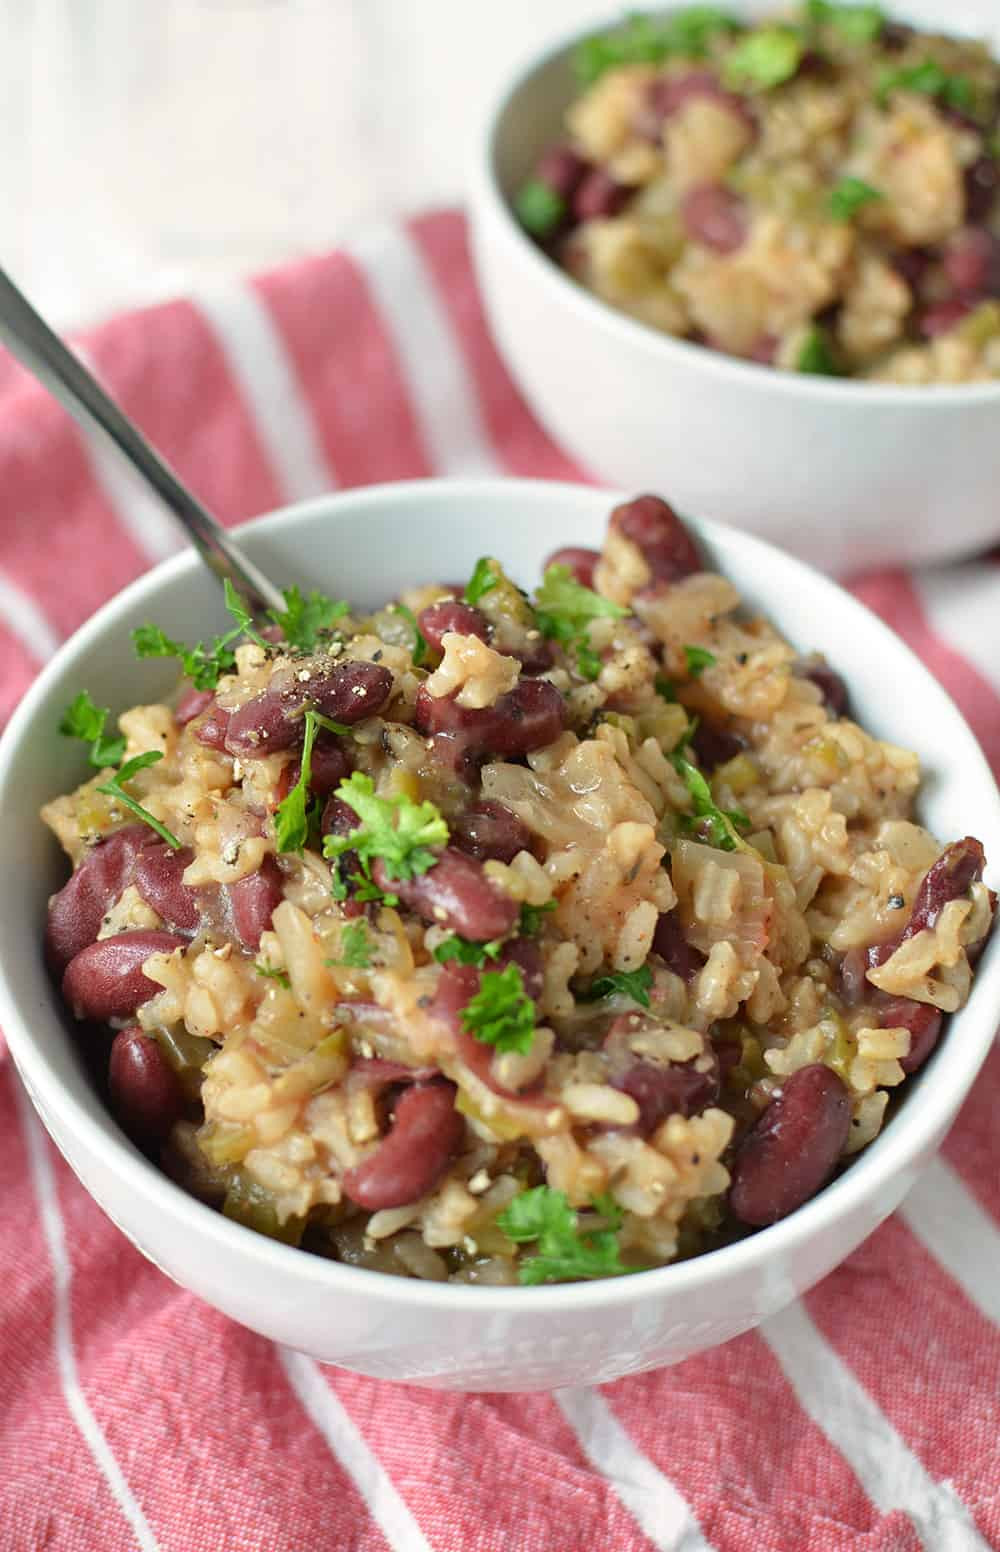 Red Beans And Rice Recipe Slow Cooker  ve arian red beans and rice slow cooker